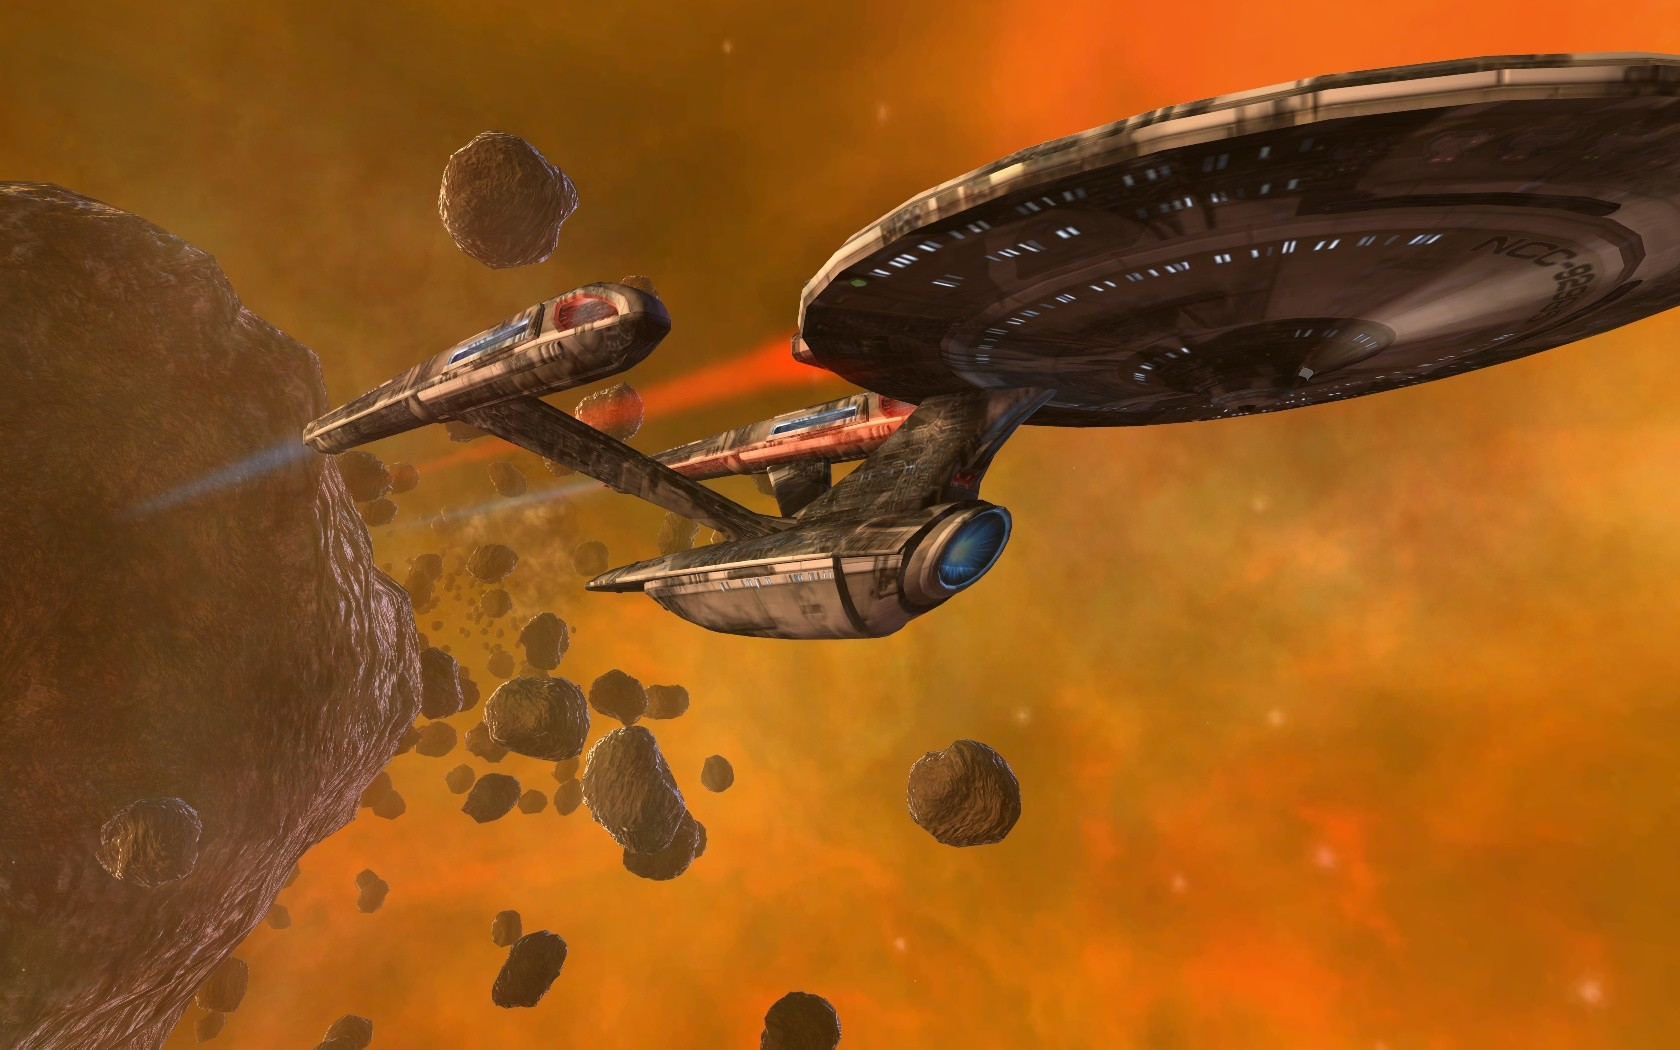 Star Trek Online - Damage from exploding Nebula